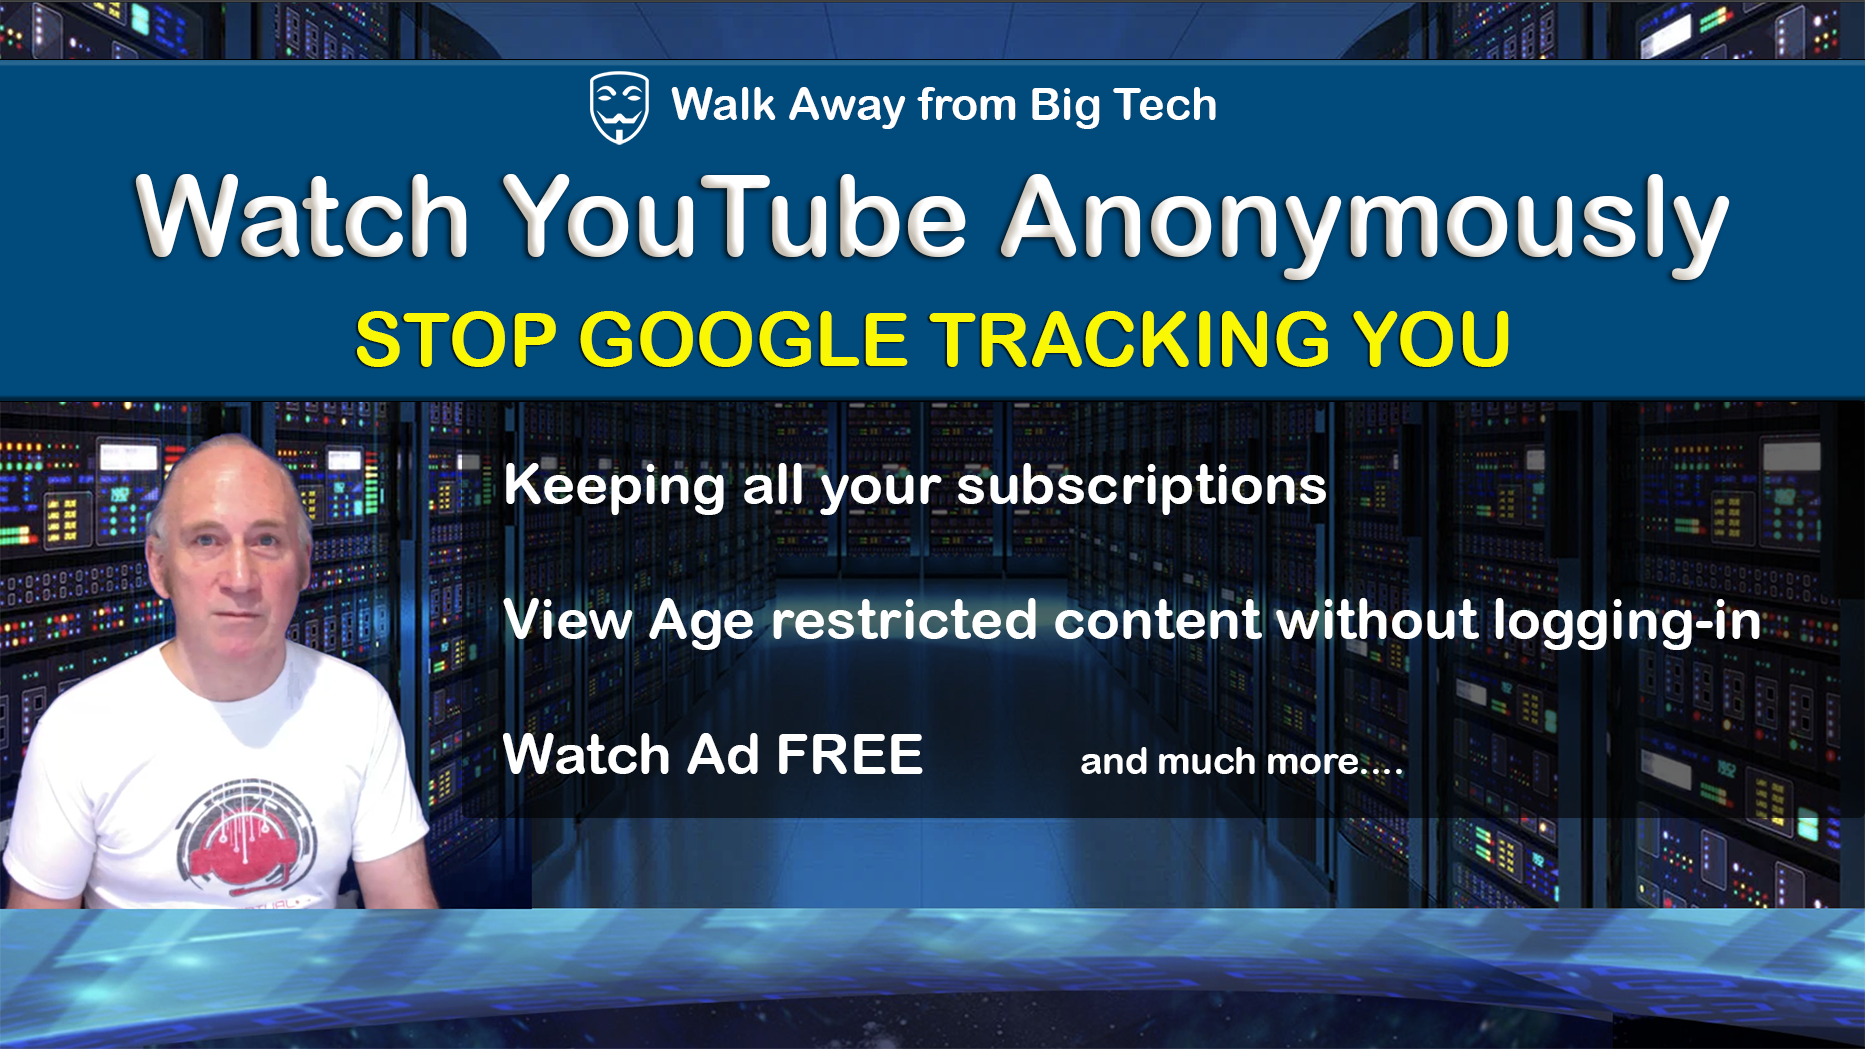 Watch YouTube Anonymously